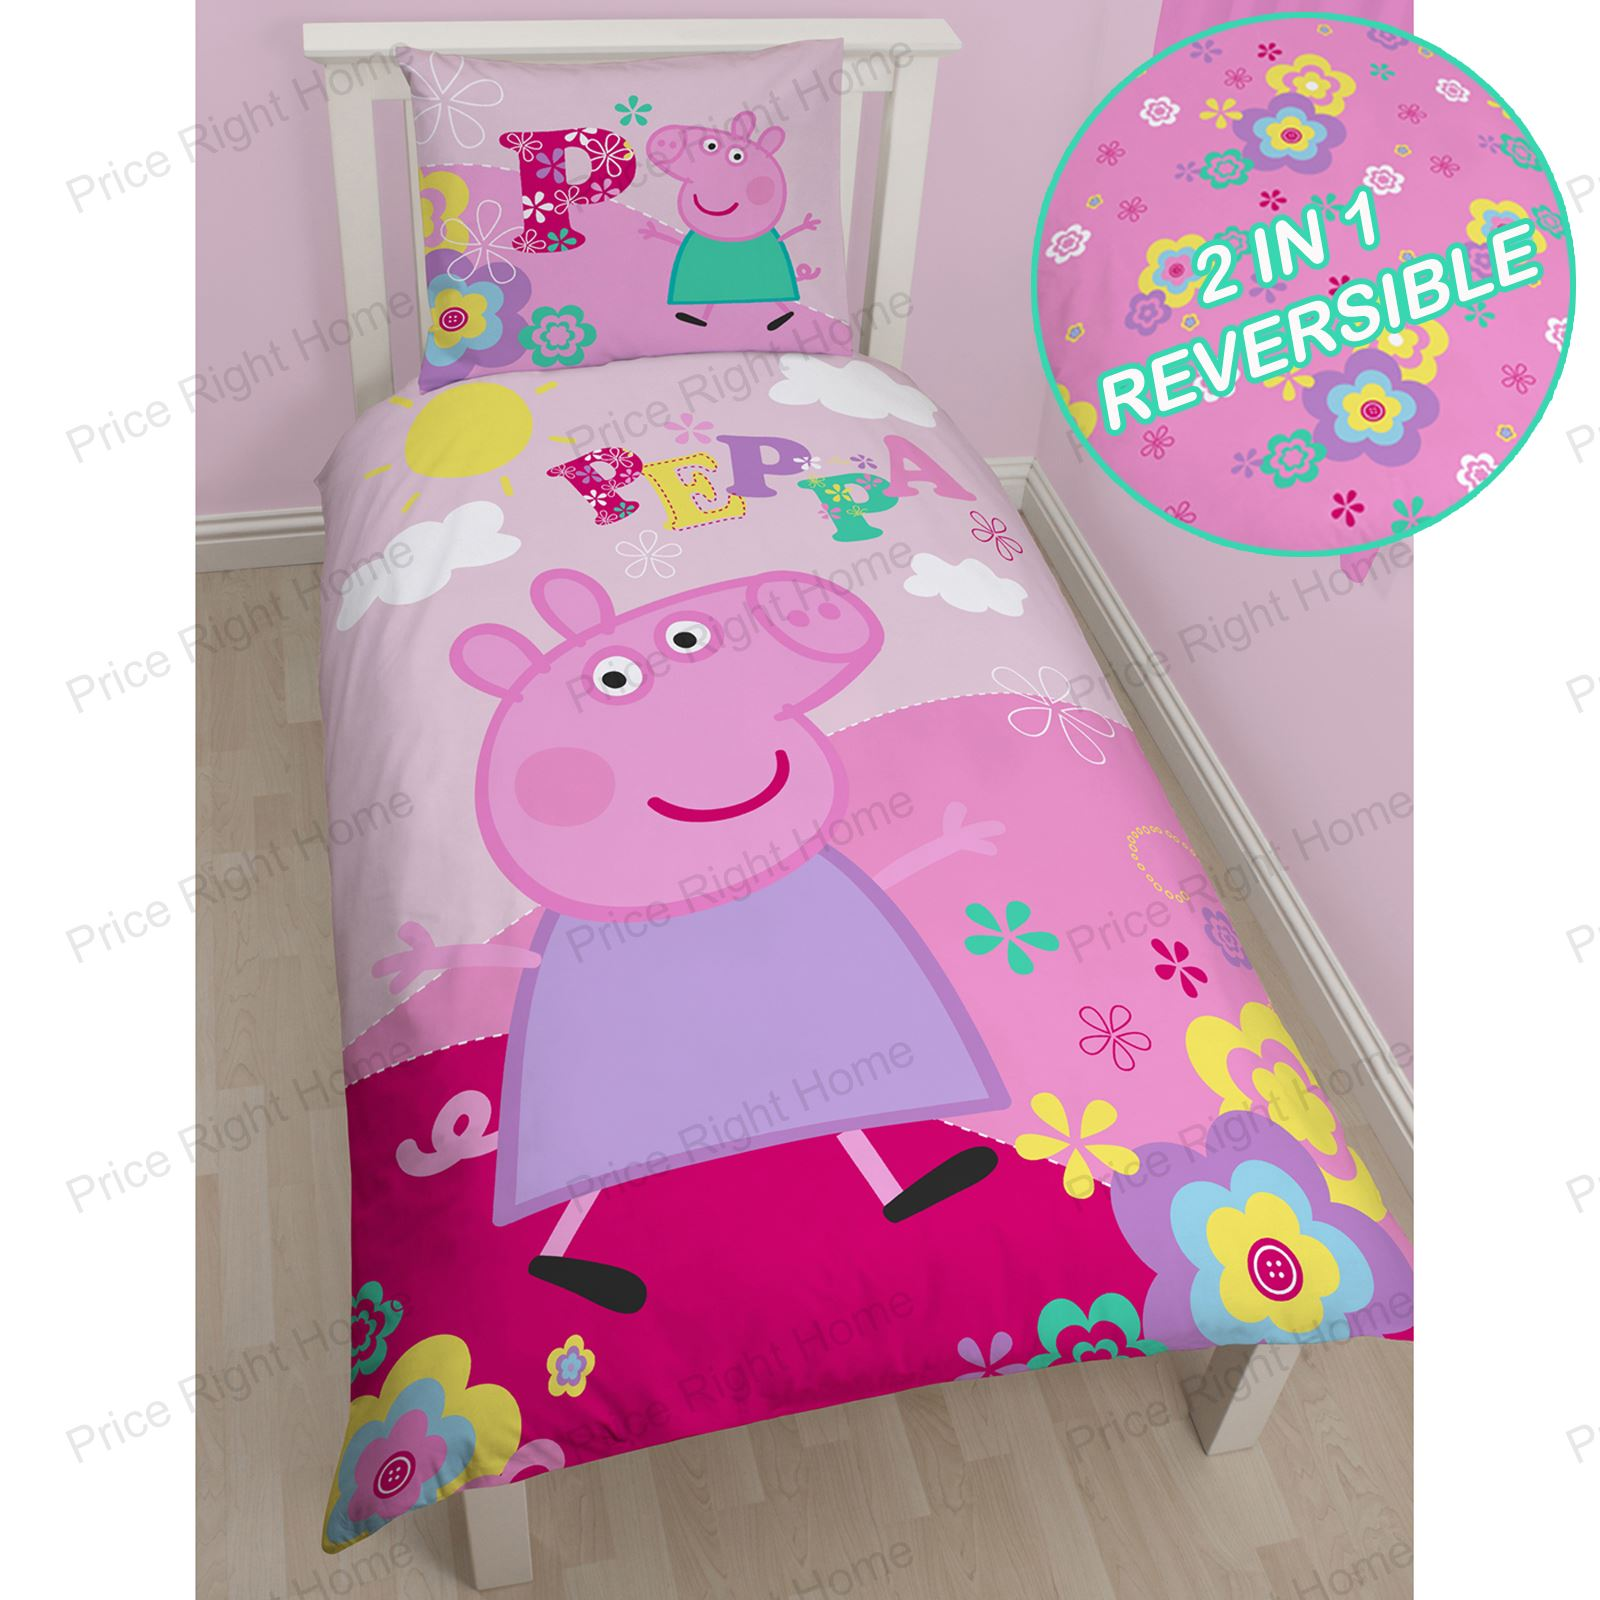 Peppa Pig Bedroom 100 Cotton Disney And Character Single Duvet Cover Sets Kids